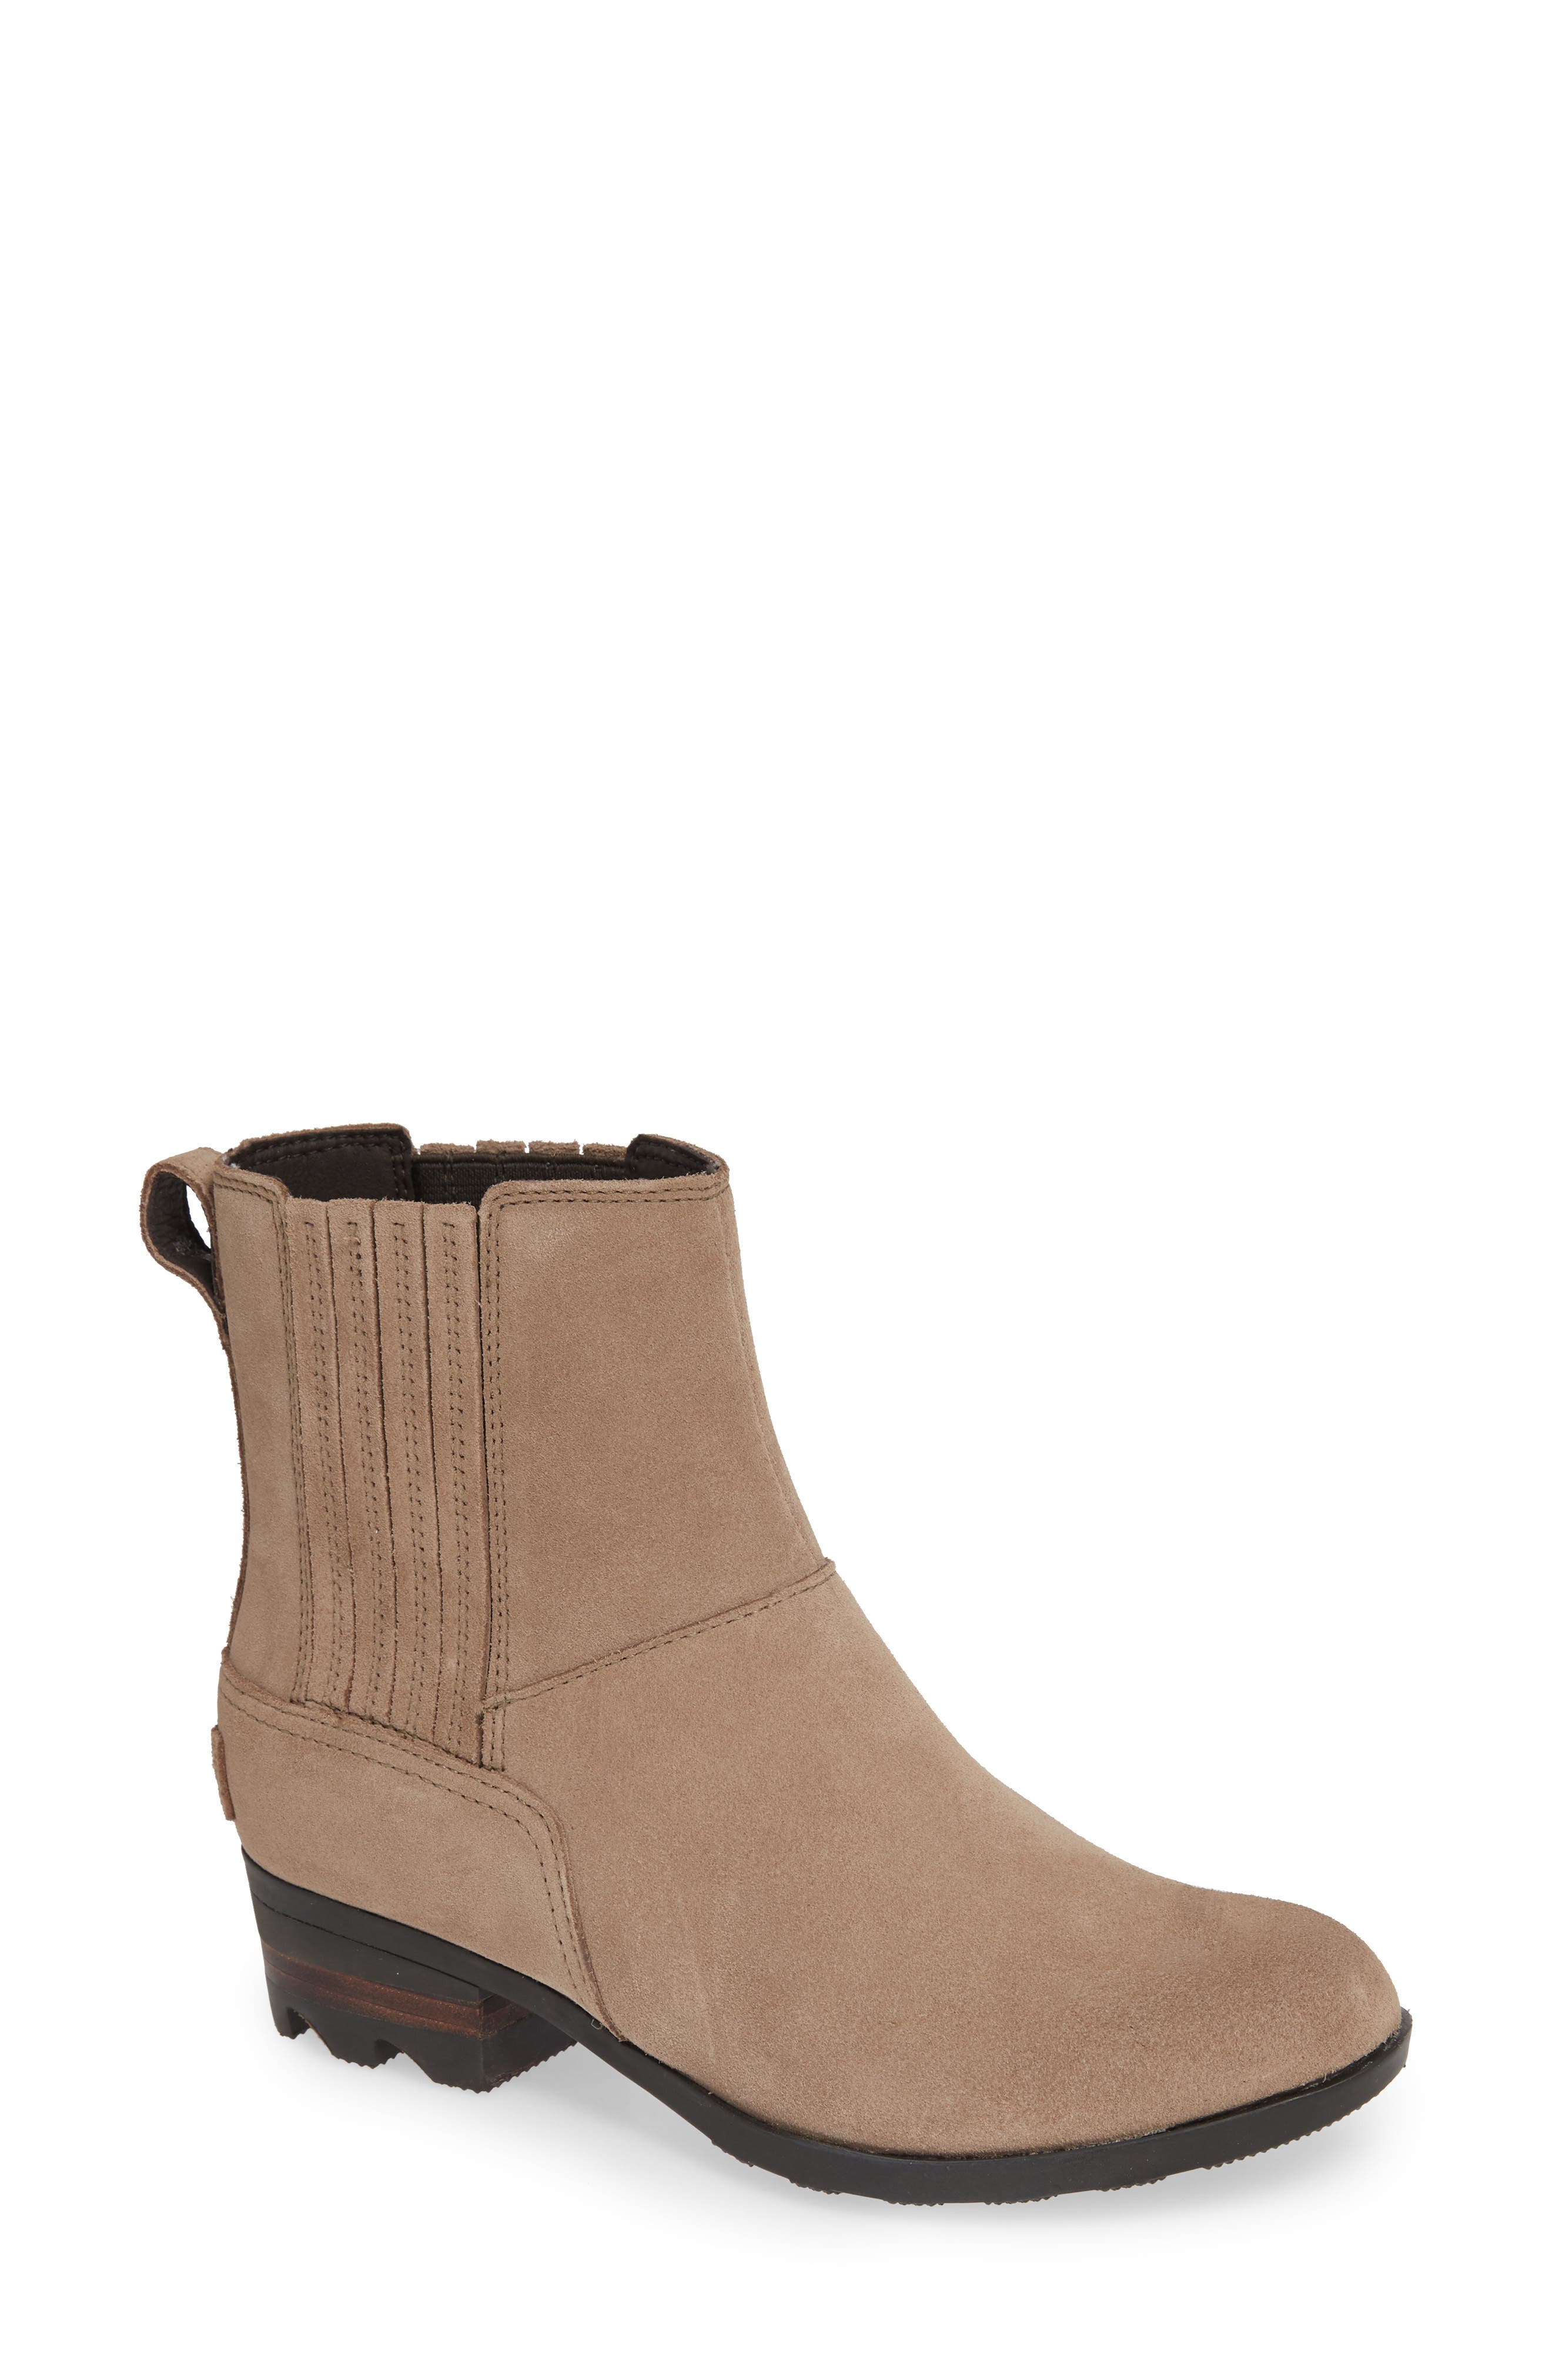 Sorel Lolla Chelsea Bootie- Brown